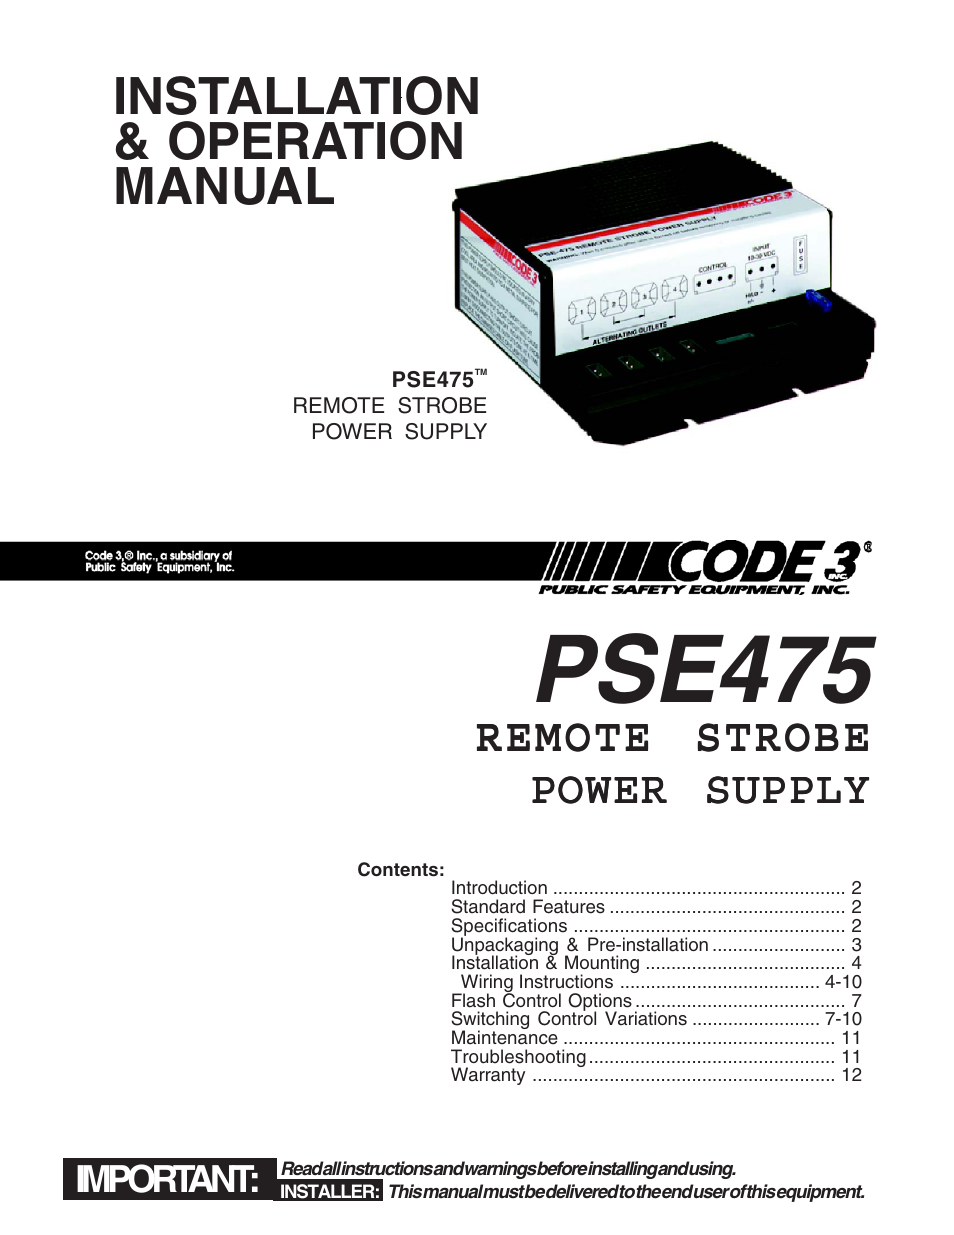 Code 3 Pse Wiring Diagram Worksheet And Light Bar Pse475 Remote Strobe Power Supply User Manual 12 Pages Rh Manualsdir Com Wire